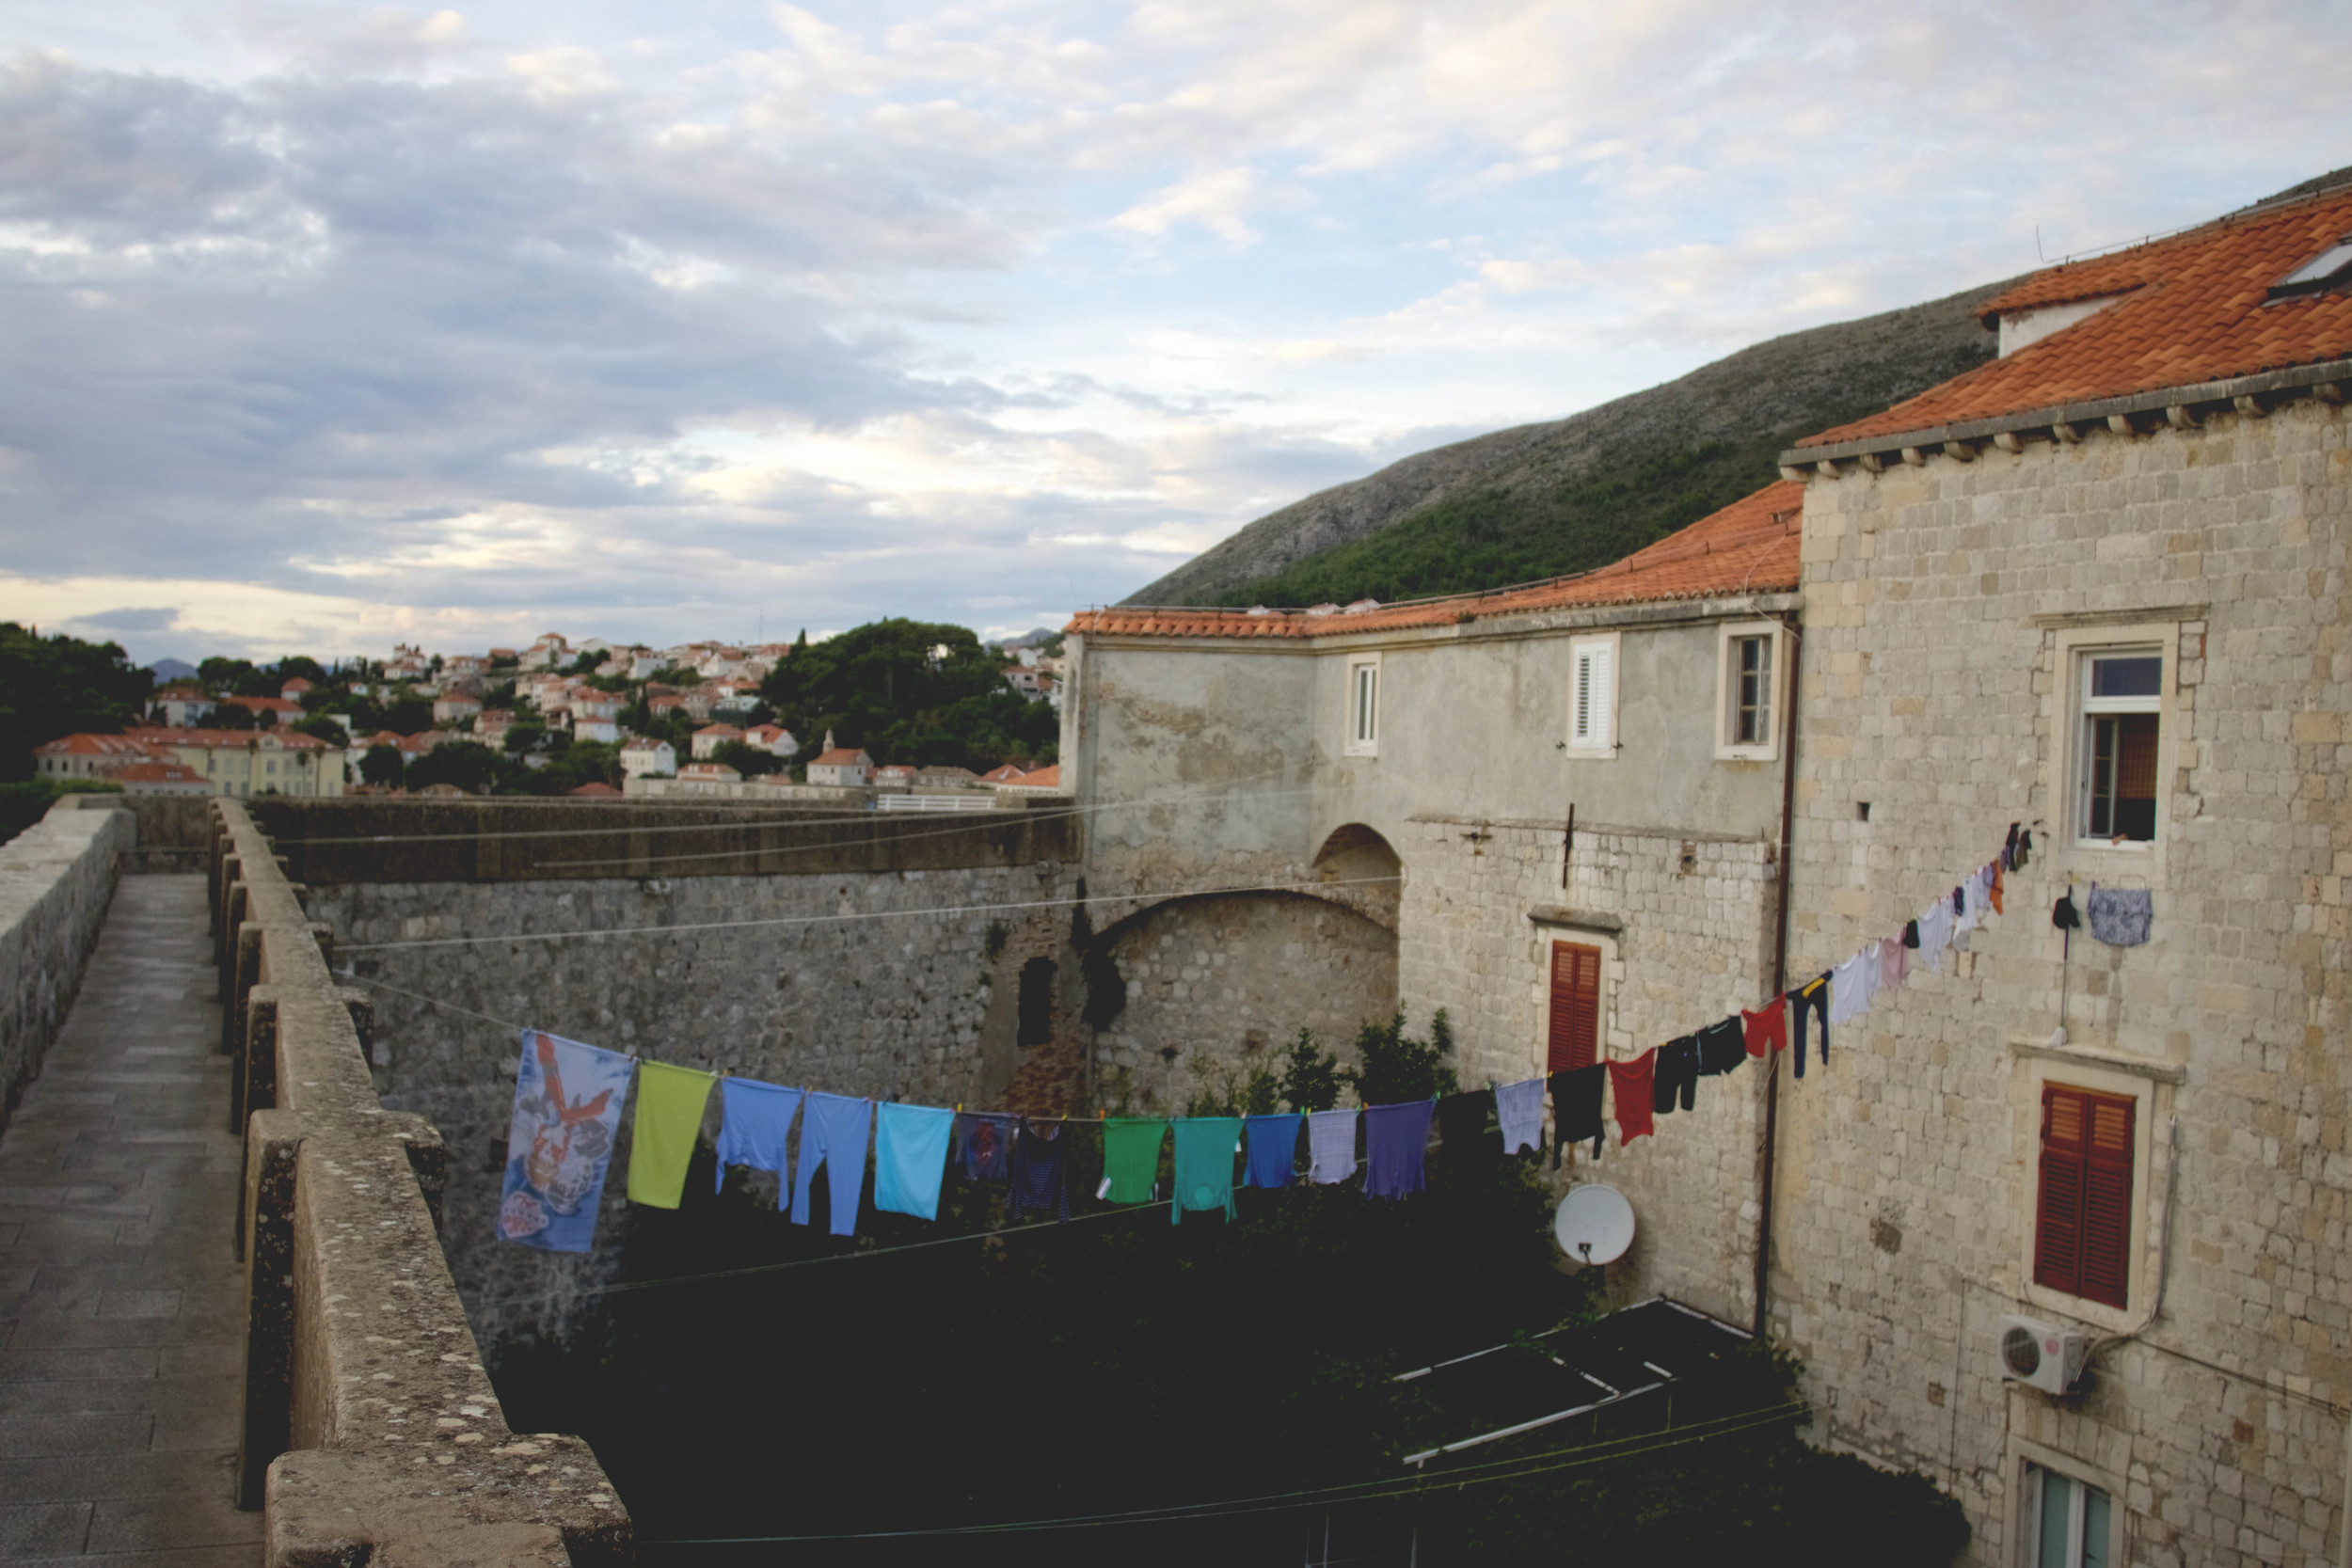 Laundry in the Old Town